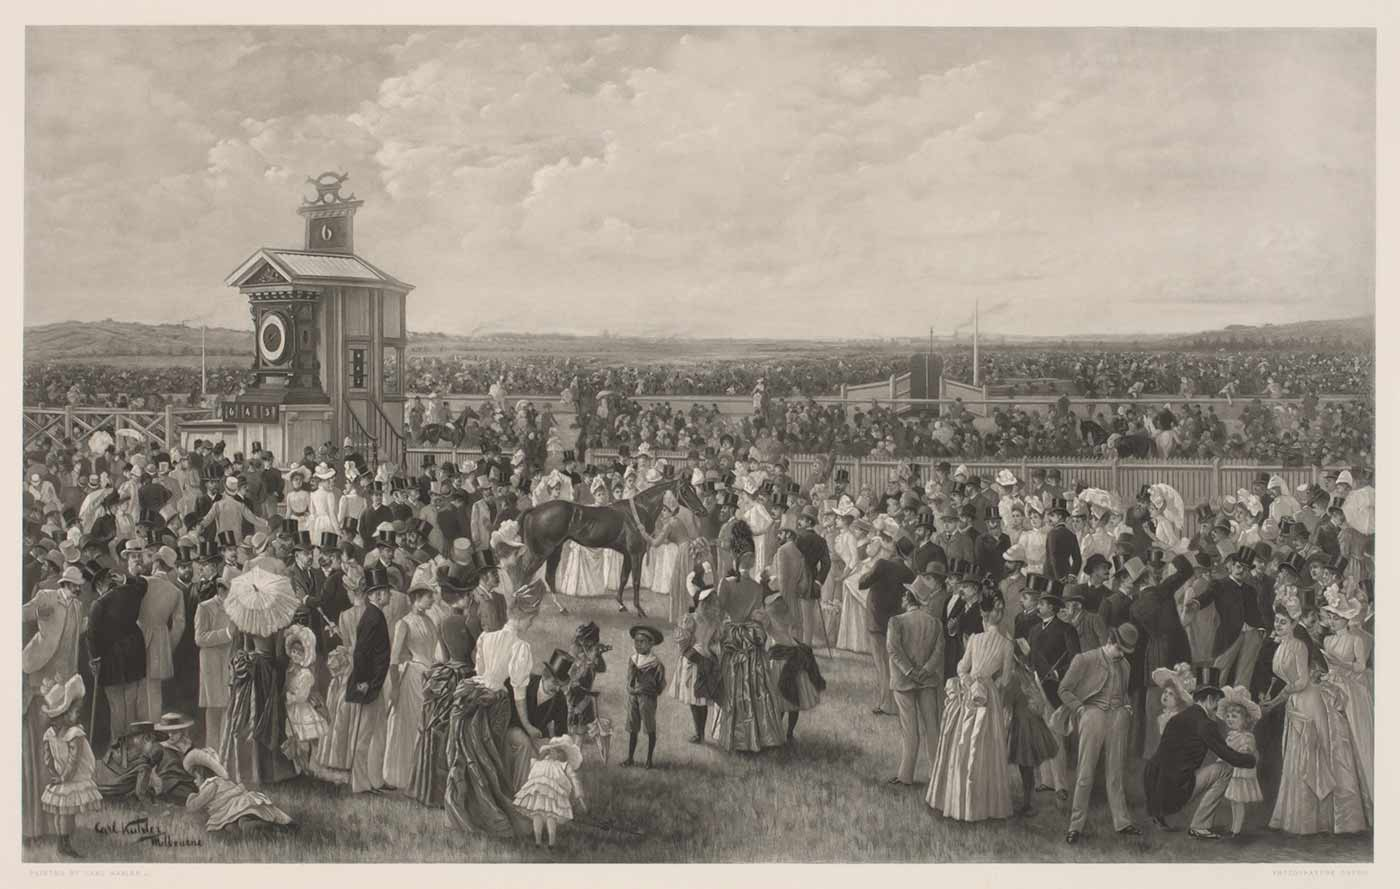 Black and white print showing a crowd of people at a horseracing track. Many people face a striking, dark racehorse which is being paraded at centre. The track and finishing post form the backdrop.  - click to view larger image